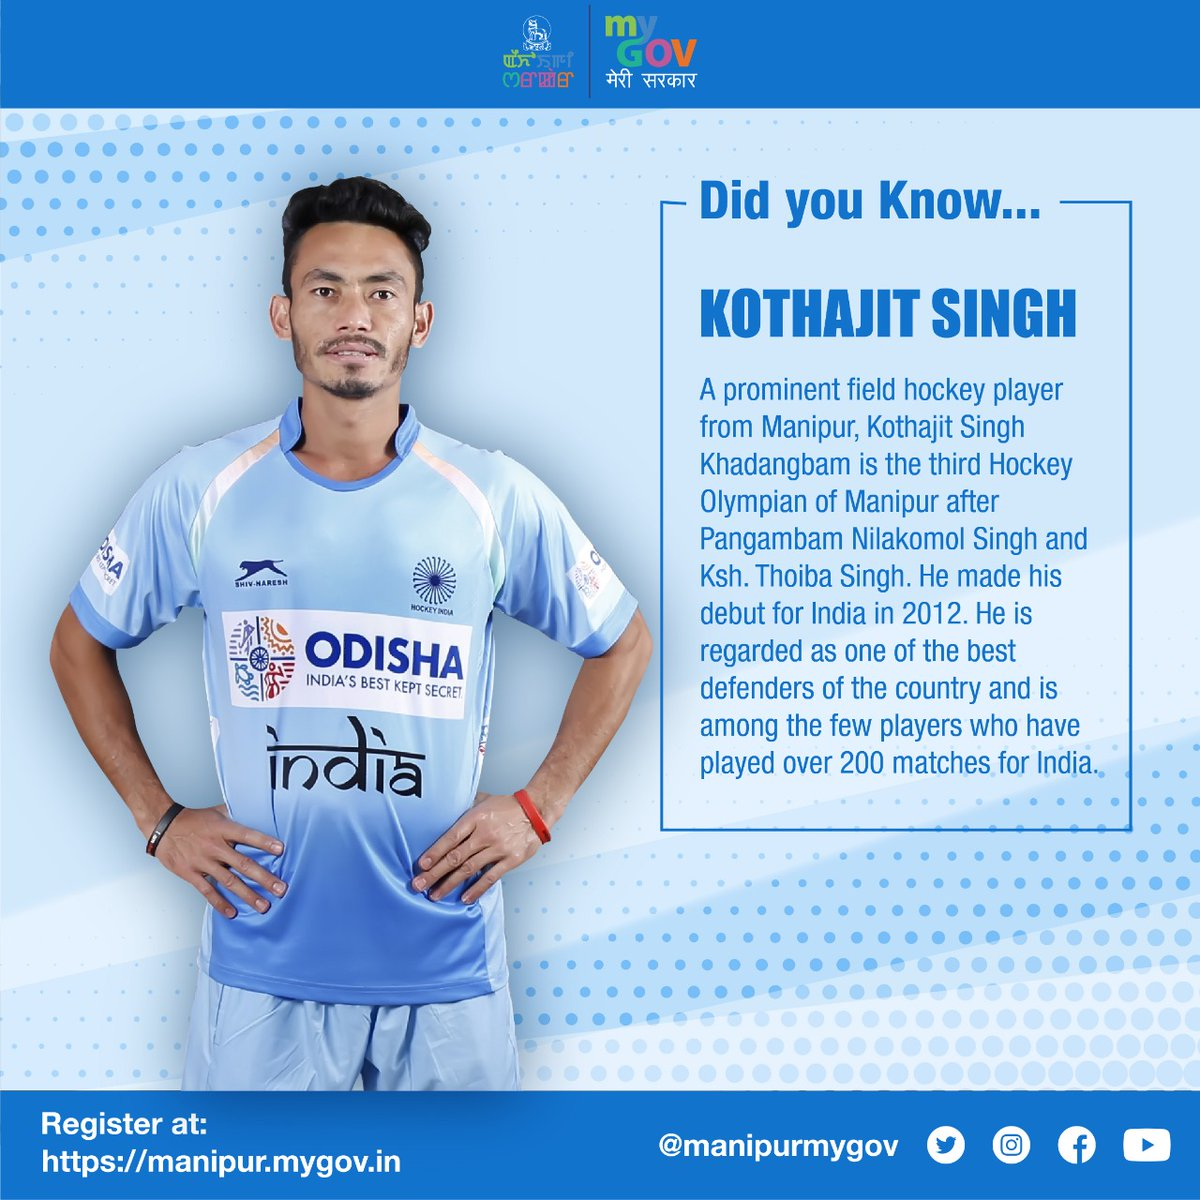 Since he made his debut in 2012, Kothajit Singh has been a pivotal force for the Indian Men's Hockey Team who powered the team to a Gold Medal finish at the 2014 Asian Games in Incheon, South Korea. He considers the Hockey legend, Dhanraj Pillay as his role model.  #HockeyIndia